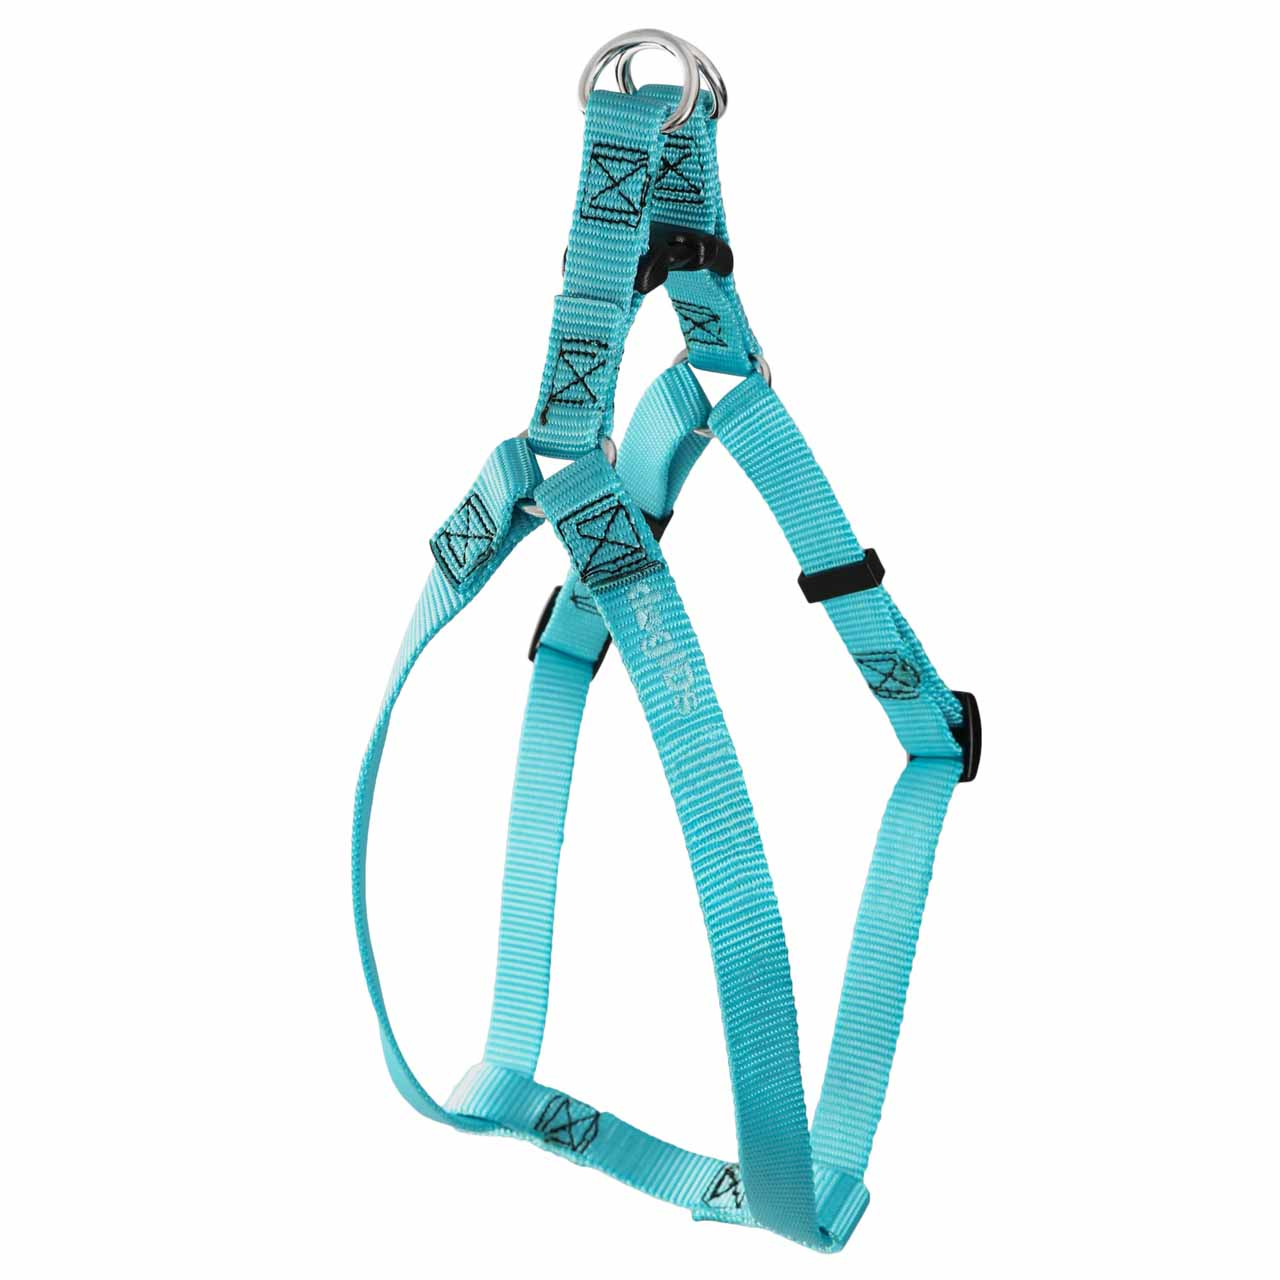 Step-In Nylon Dog Harness with Personalized Buckle | dogIDs